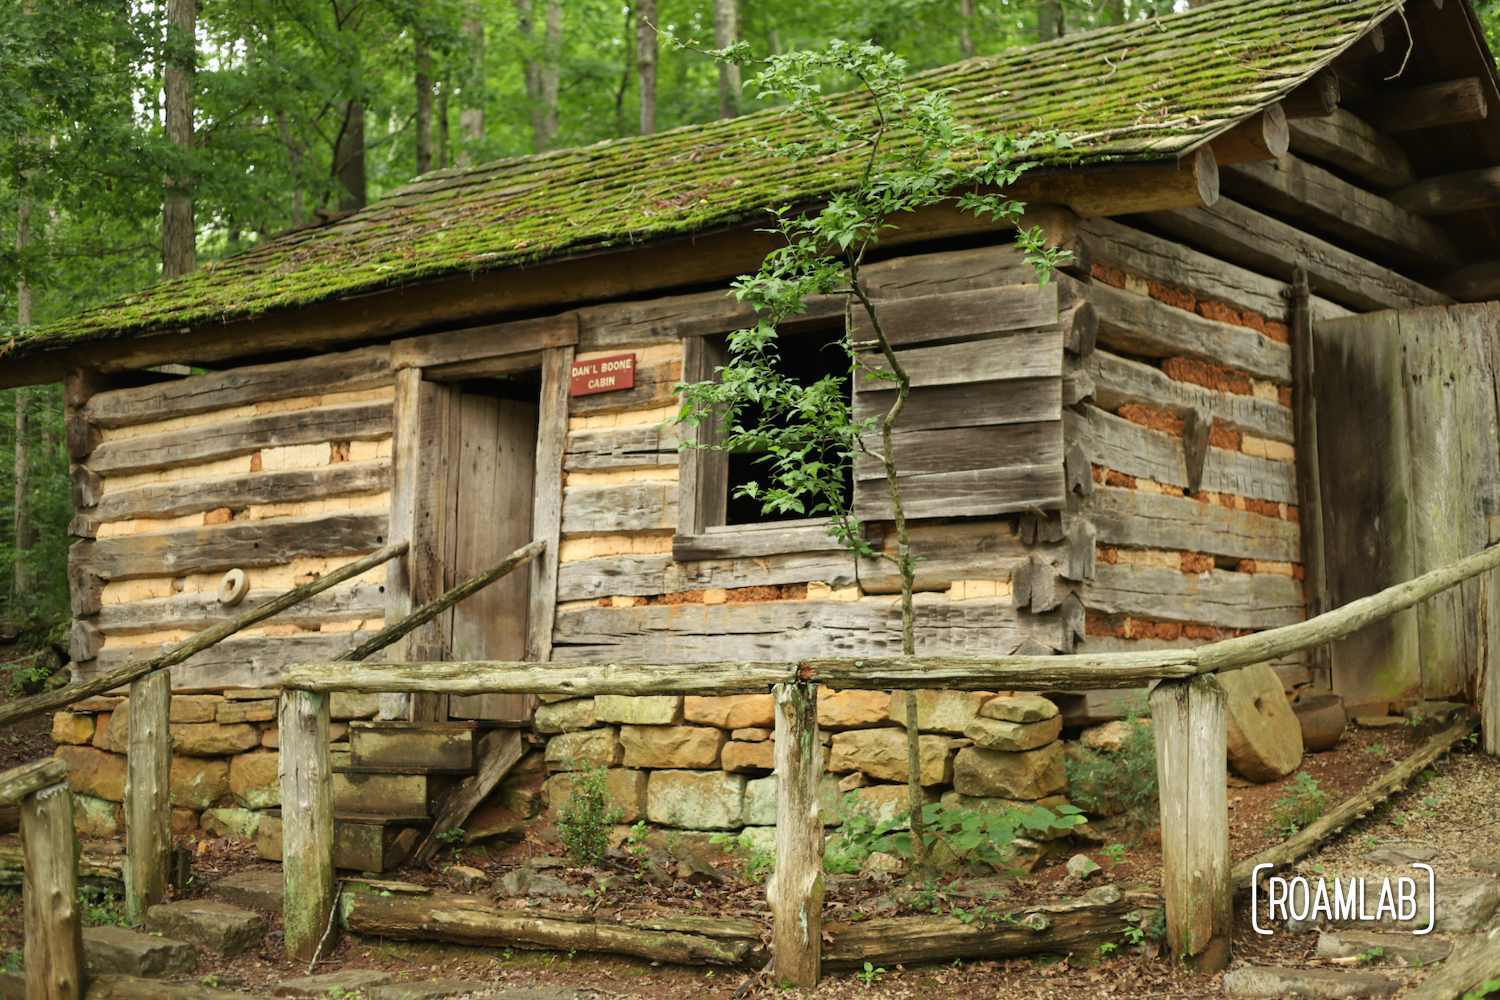 Wander historic homesteads, Daniel Boon's Cabin, and parade with peacocks at the Museum of Appalachia in Clinton, Tennessee